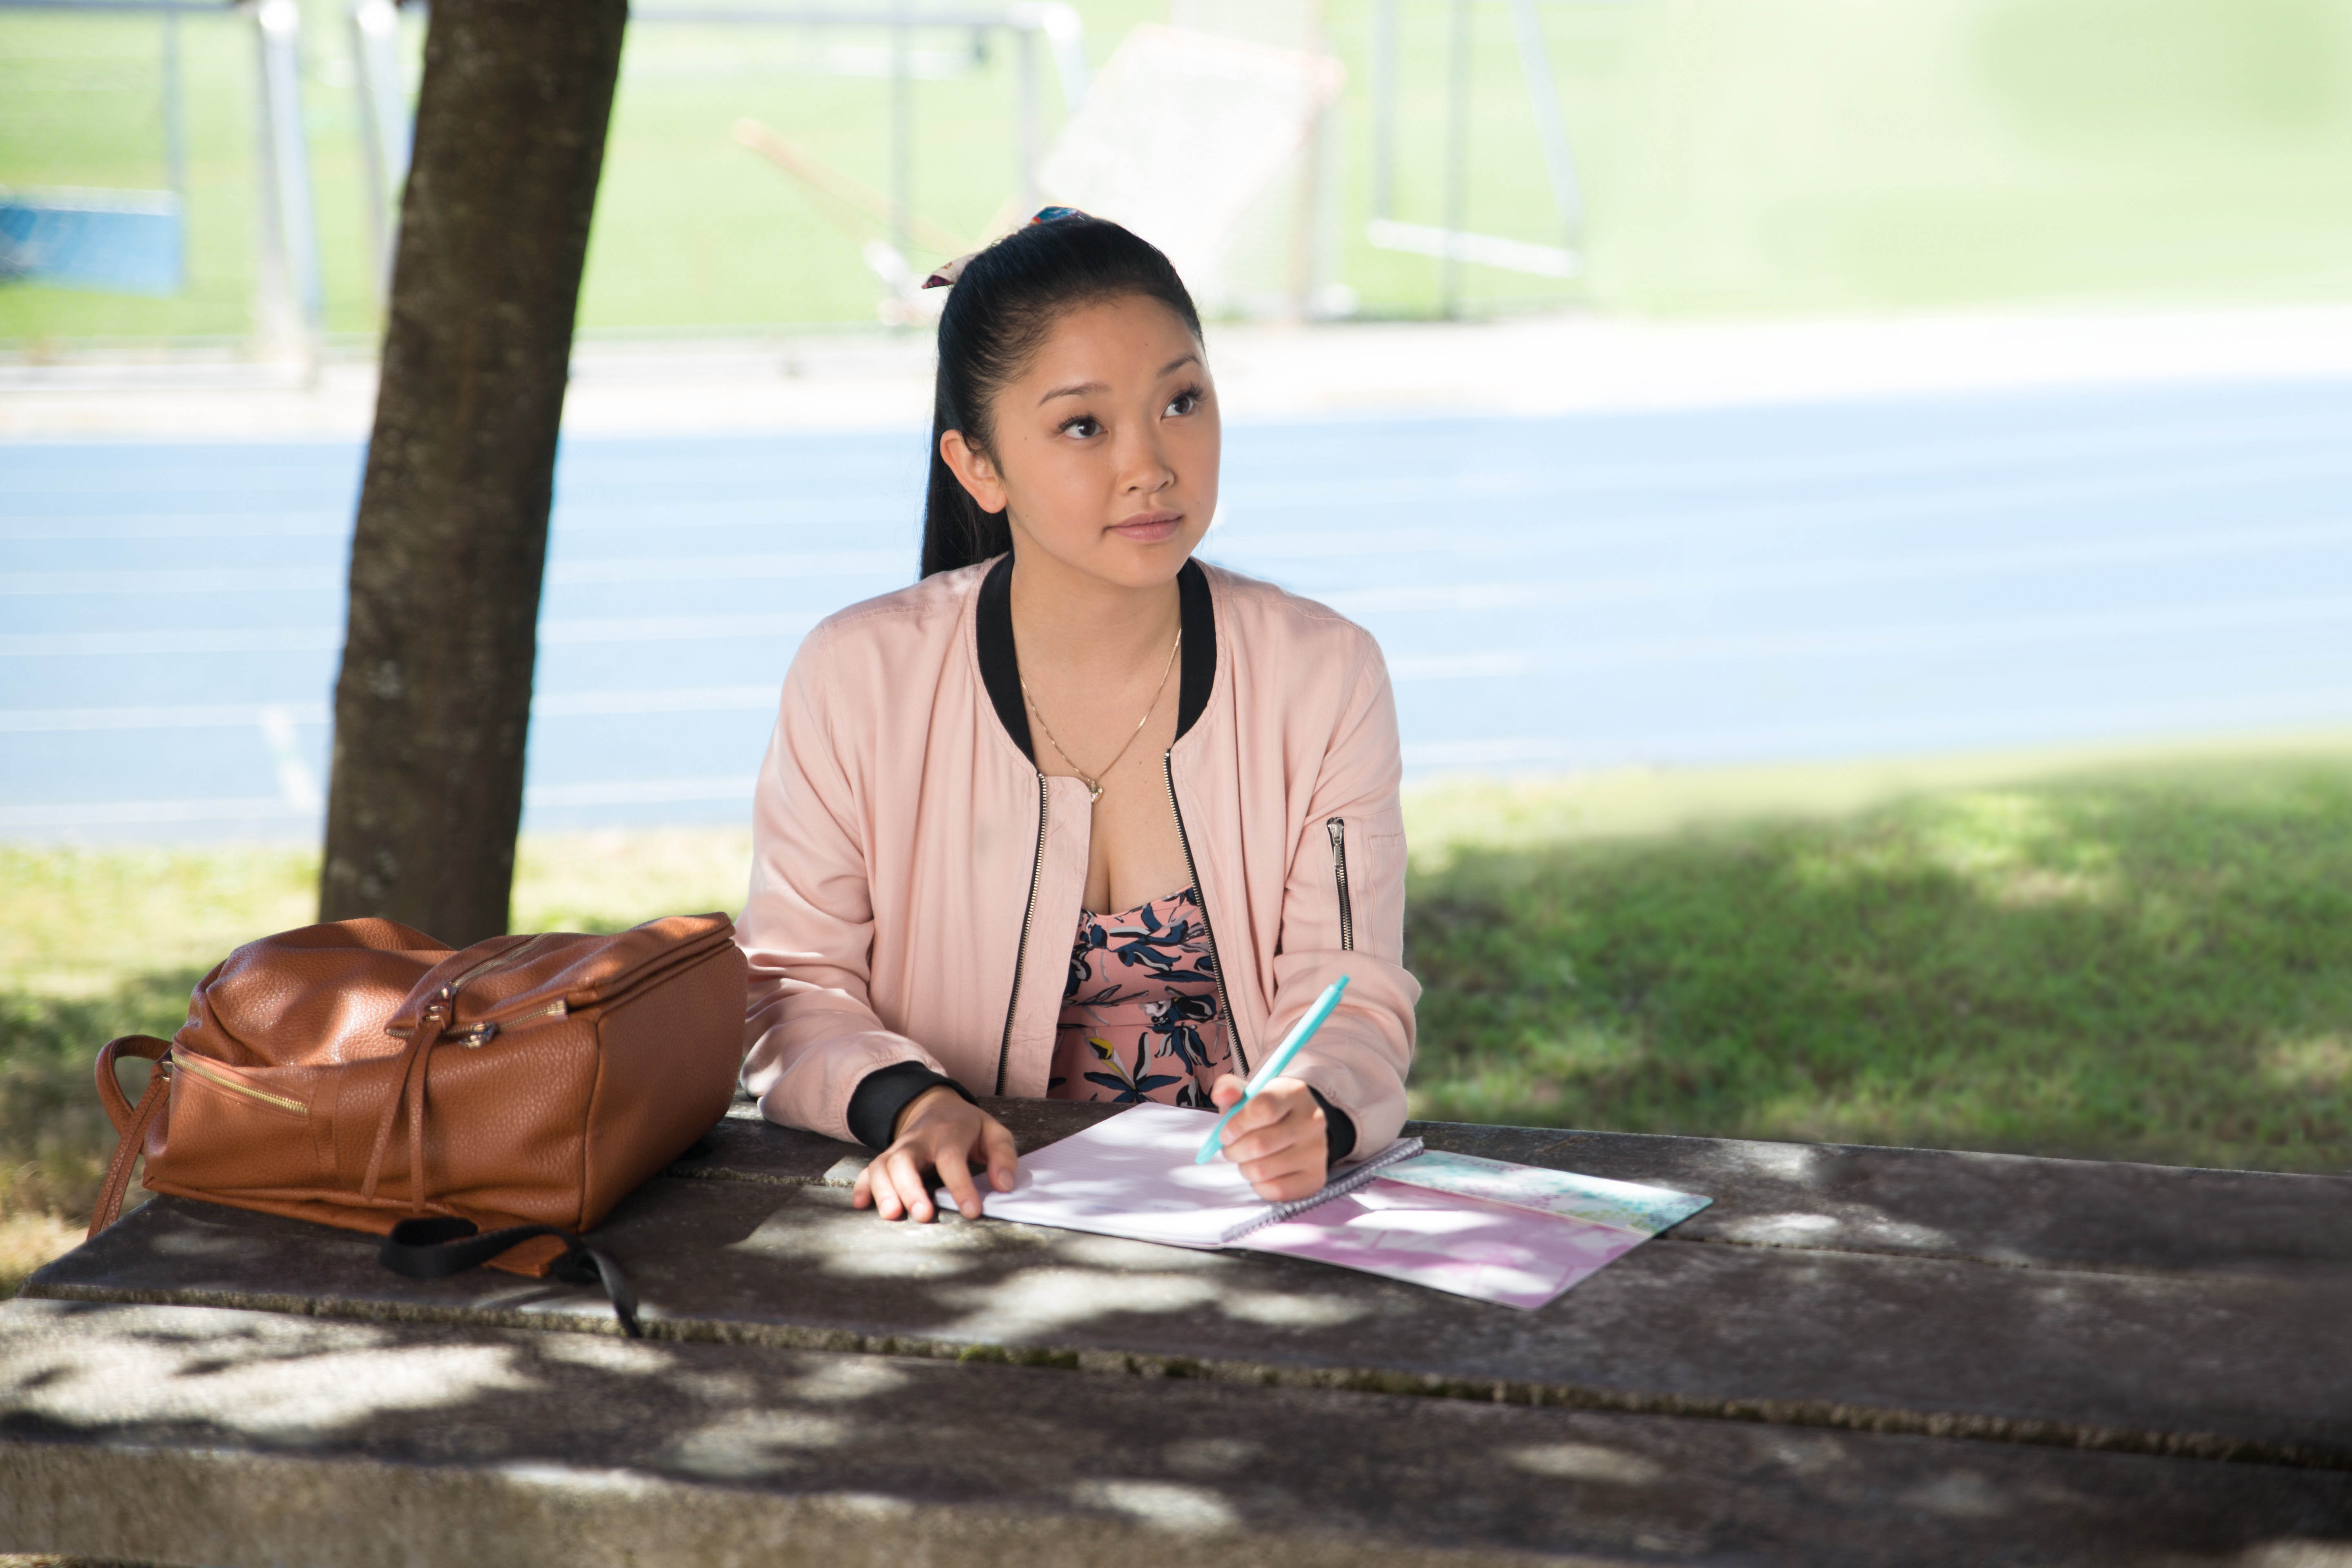 Report: Netflix's To All the Boys I've Loved Before is getting a sequel